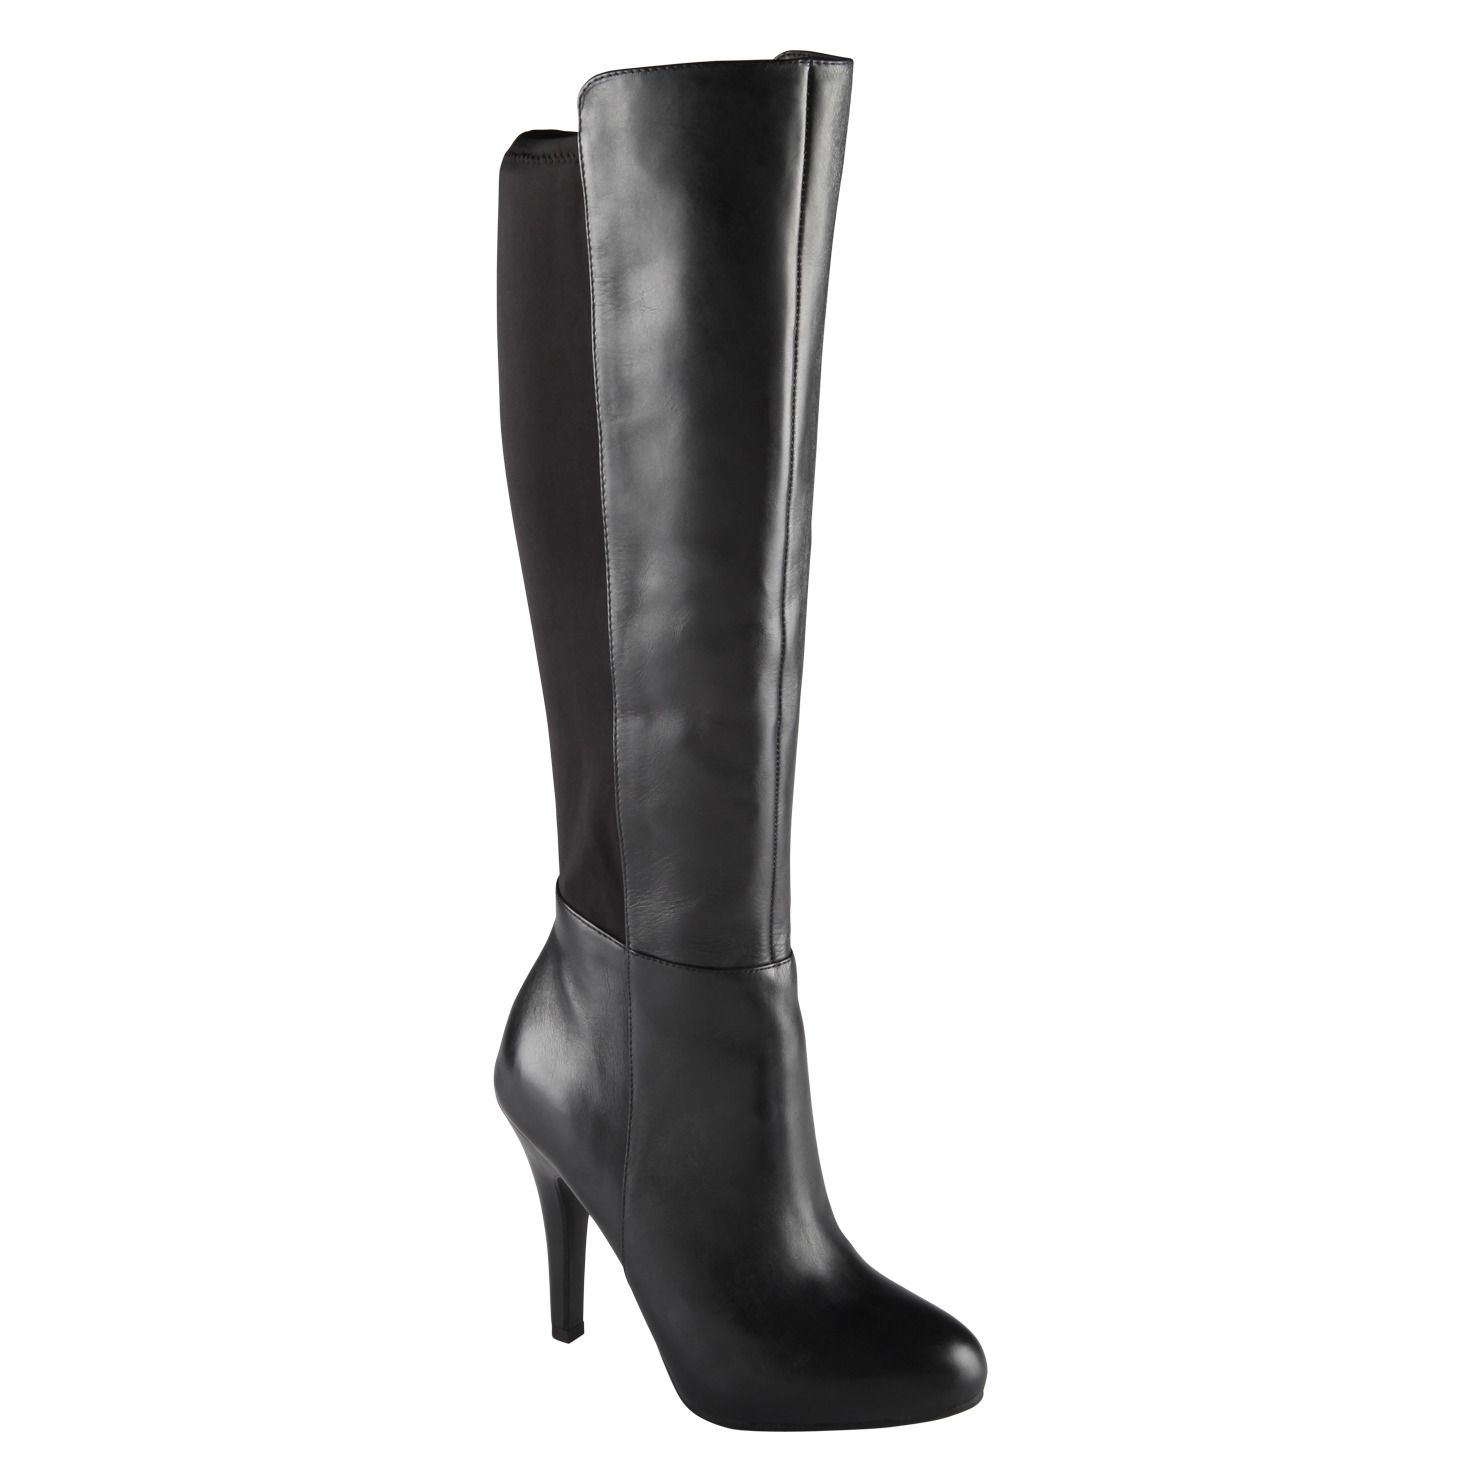 REEP sale 's boots women for sale at GLOBO Shoes. | Boots